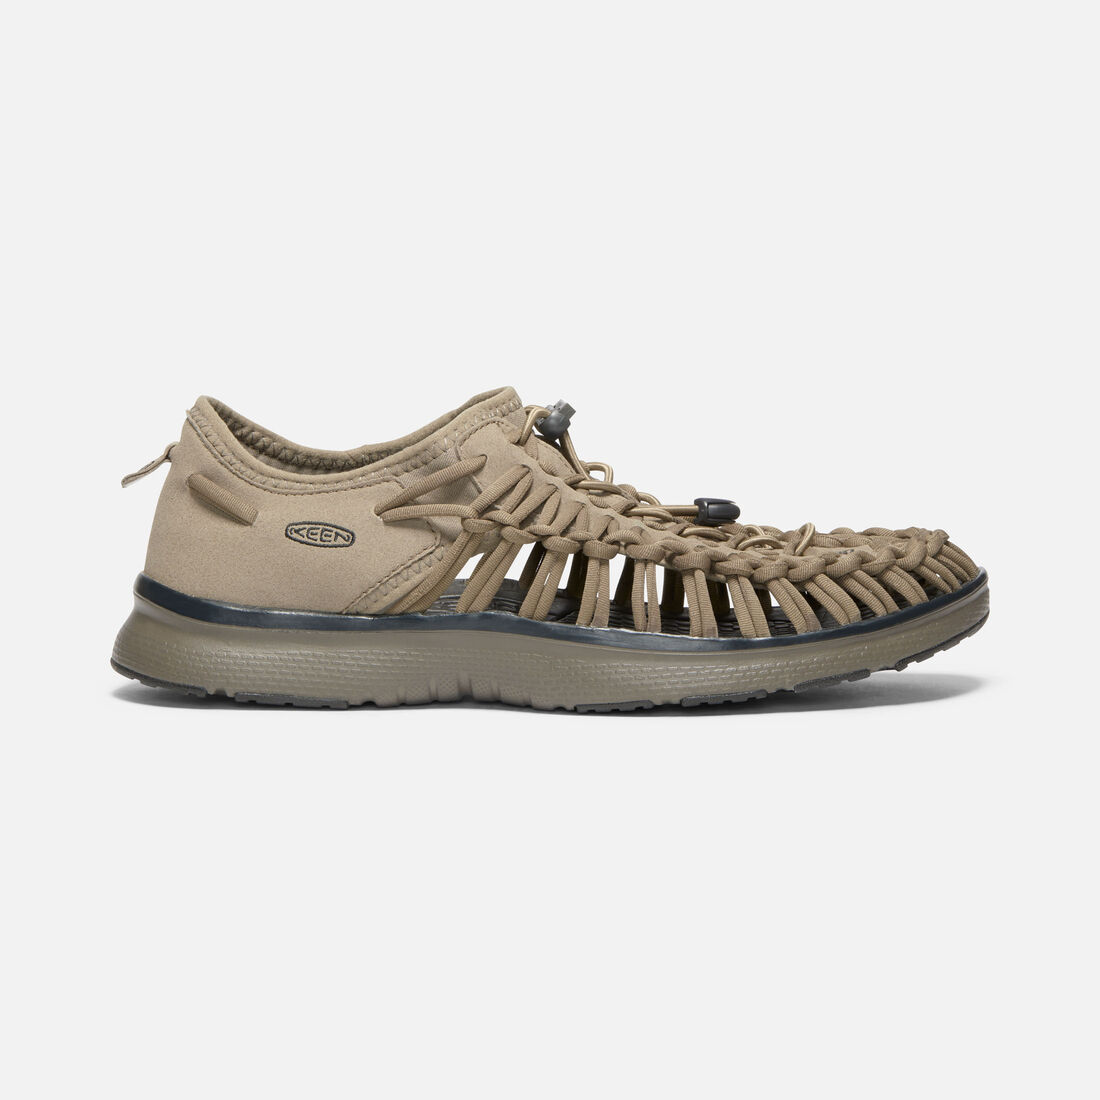 Men's UNEEK O2 in BRINDLE/BUNGEE CORD - large view.